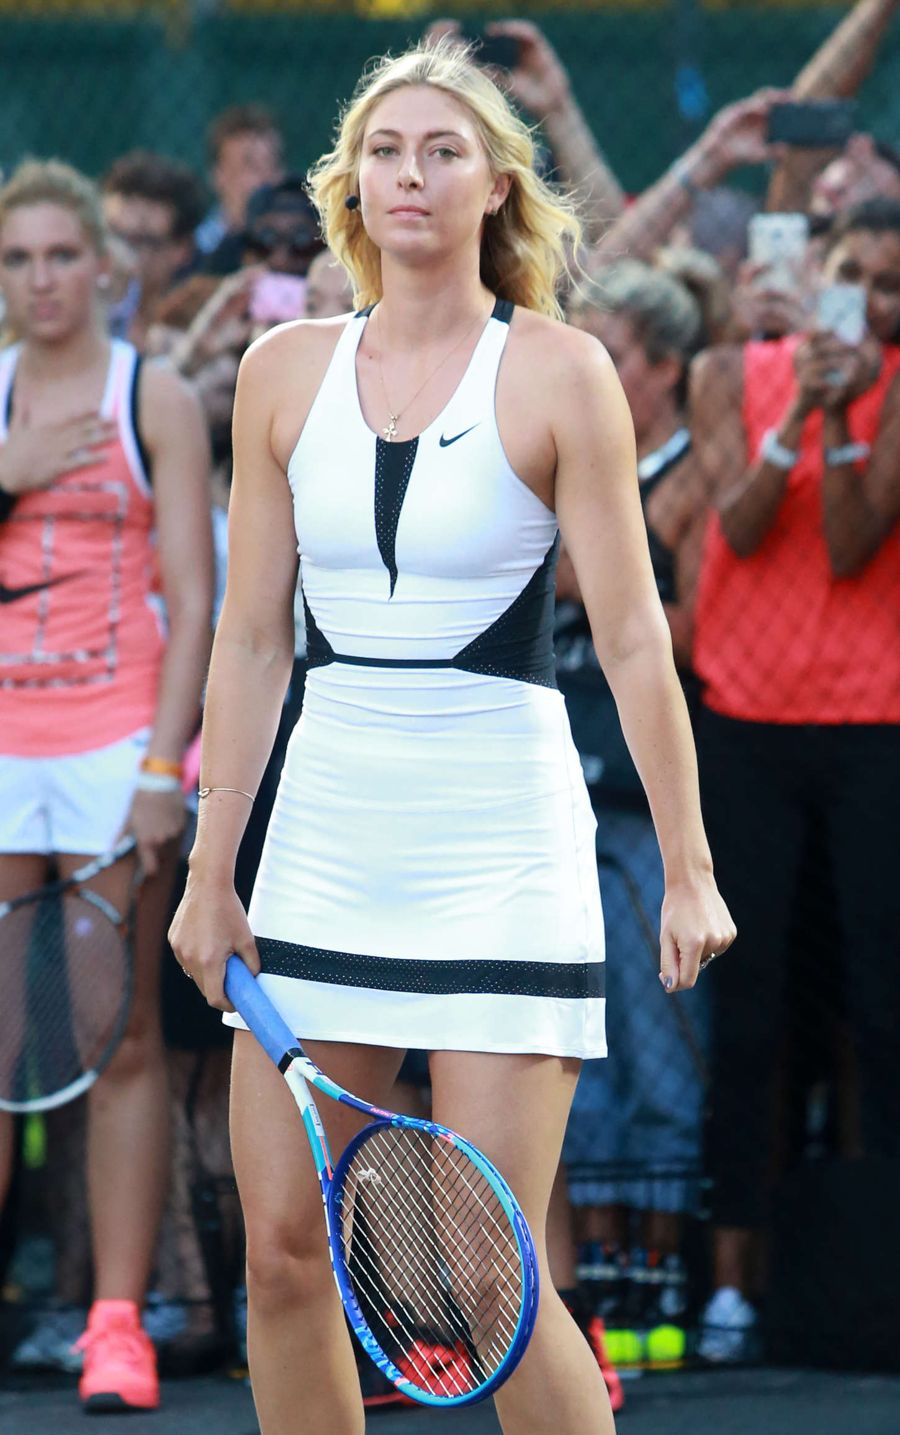 Maria Sharapova - Nike's 'NYC Street Tennis' Event in NYC